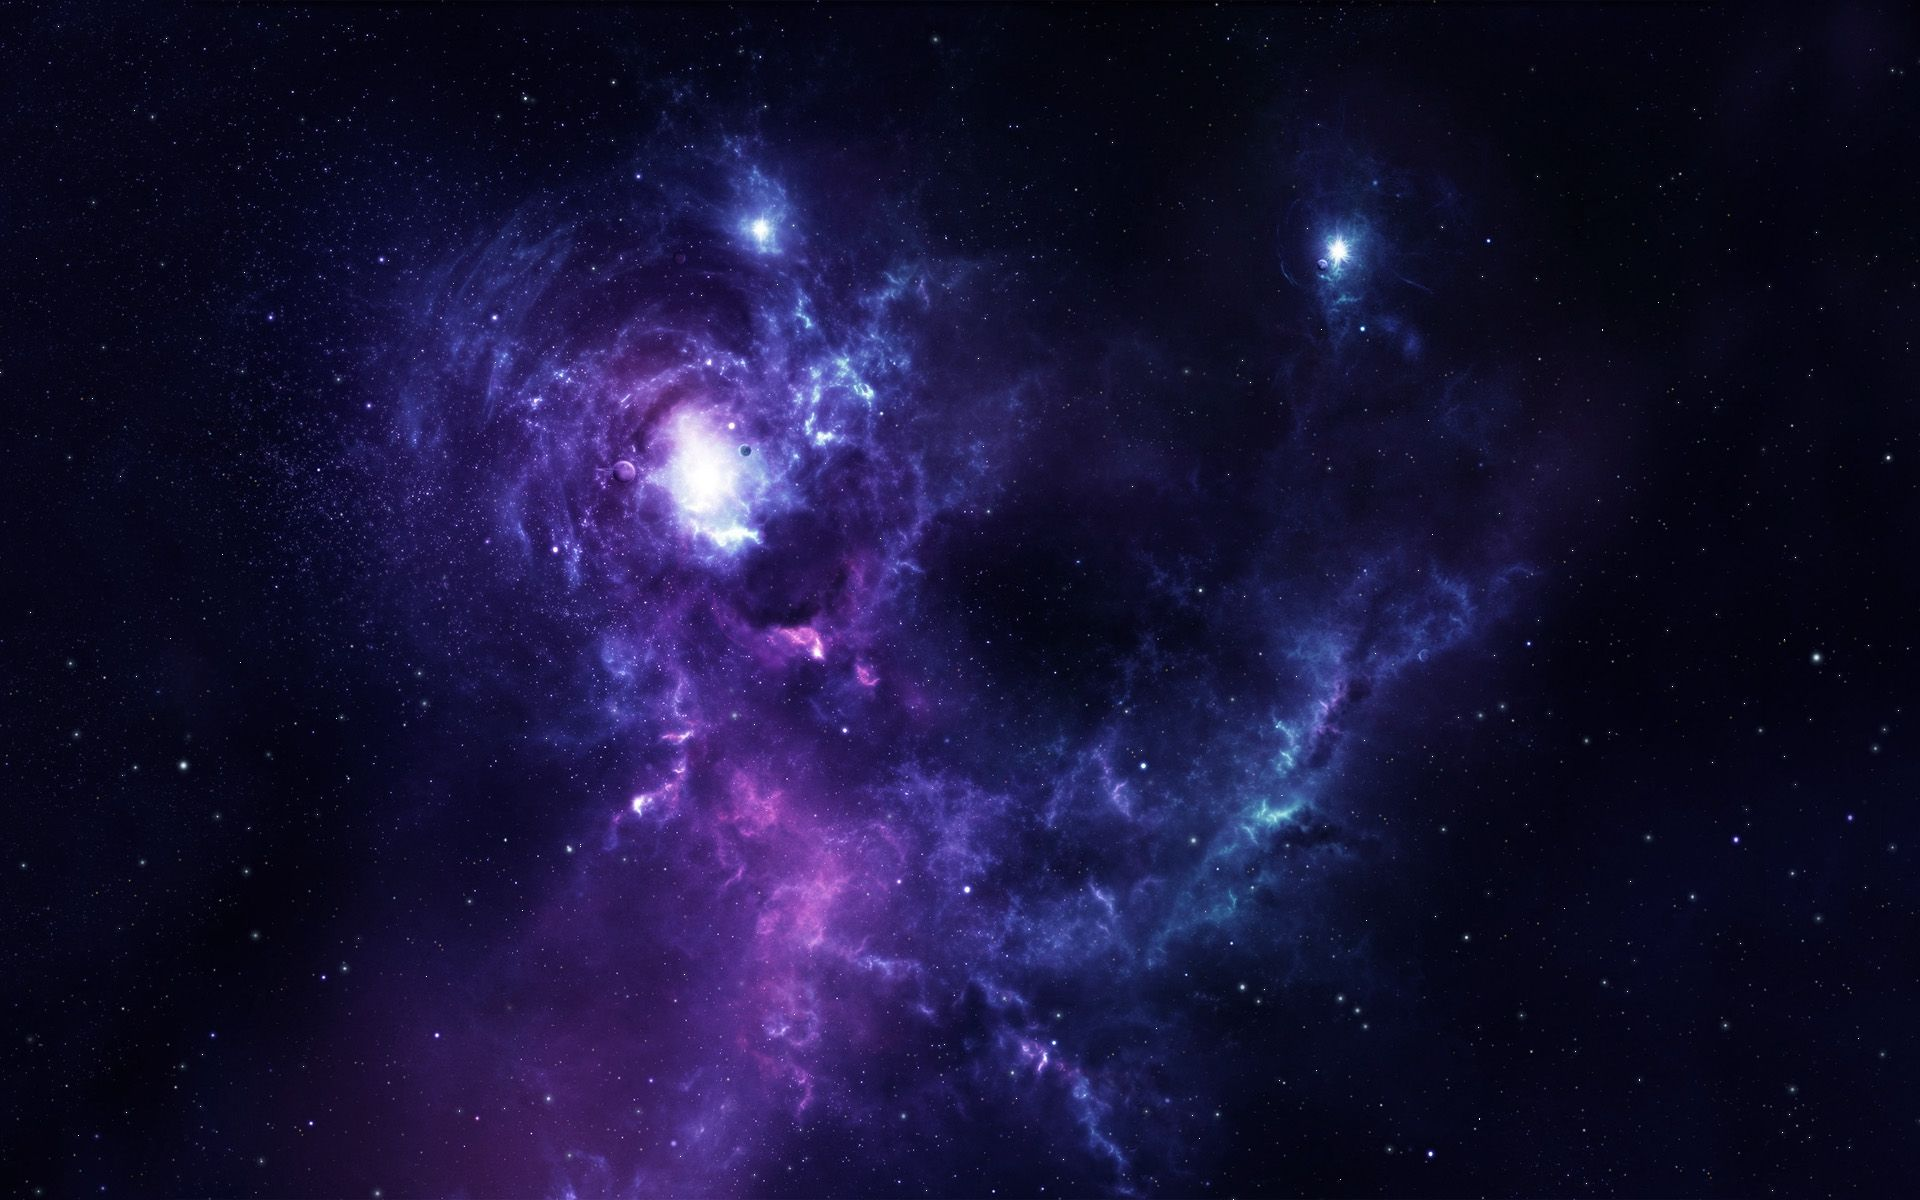 Simple Wallpaper High Quality Space - 6b4e3ba89005c4f8a52998fc4ad8ef9d  Collection_94153.jpg